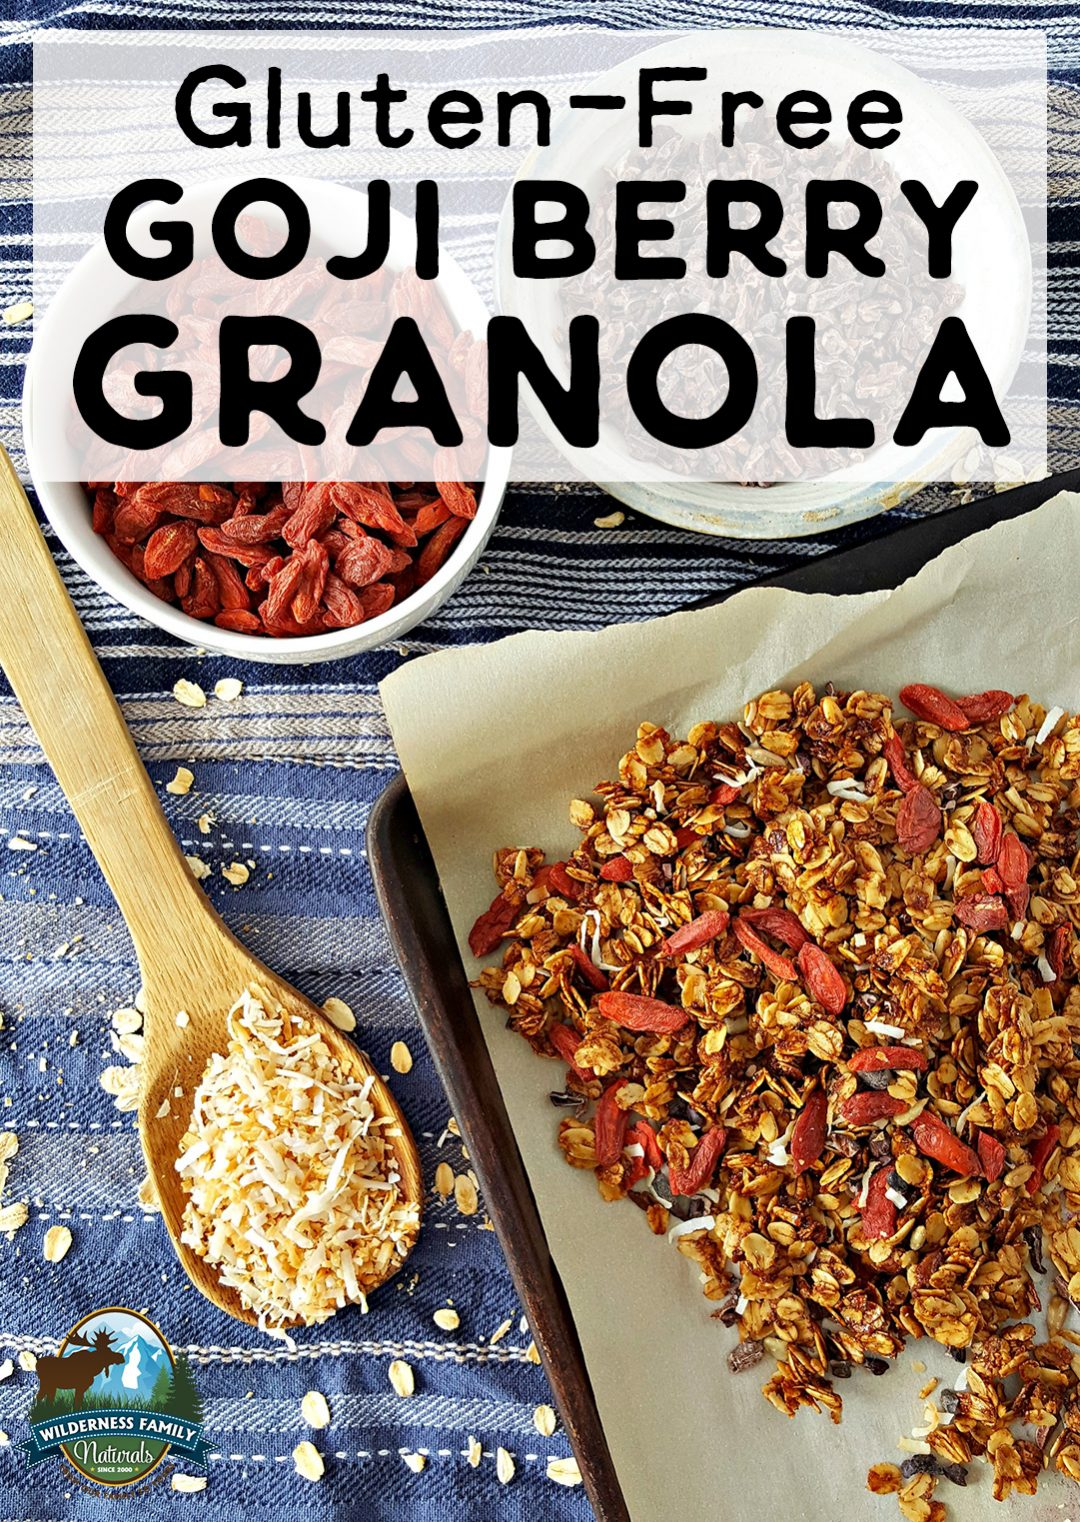 Photo of a sheet pan with goji berri granola and a bowl of goji berries.